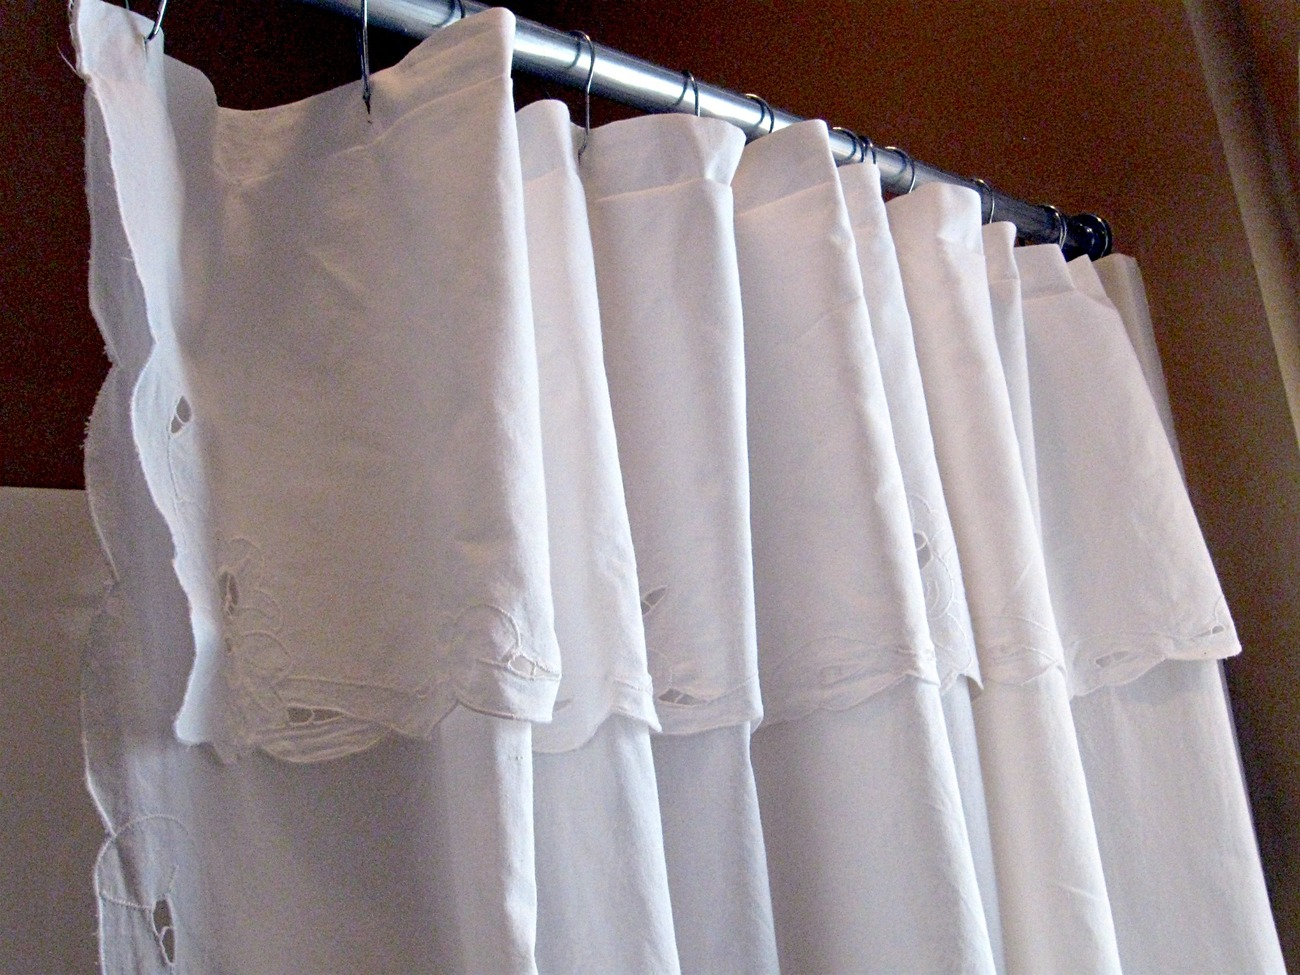 pretty white cotton cutwork lace shower curtain shower